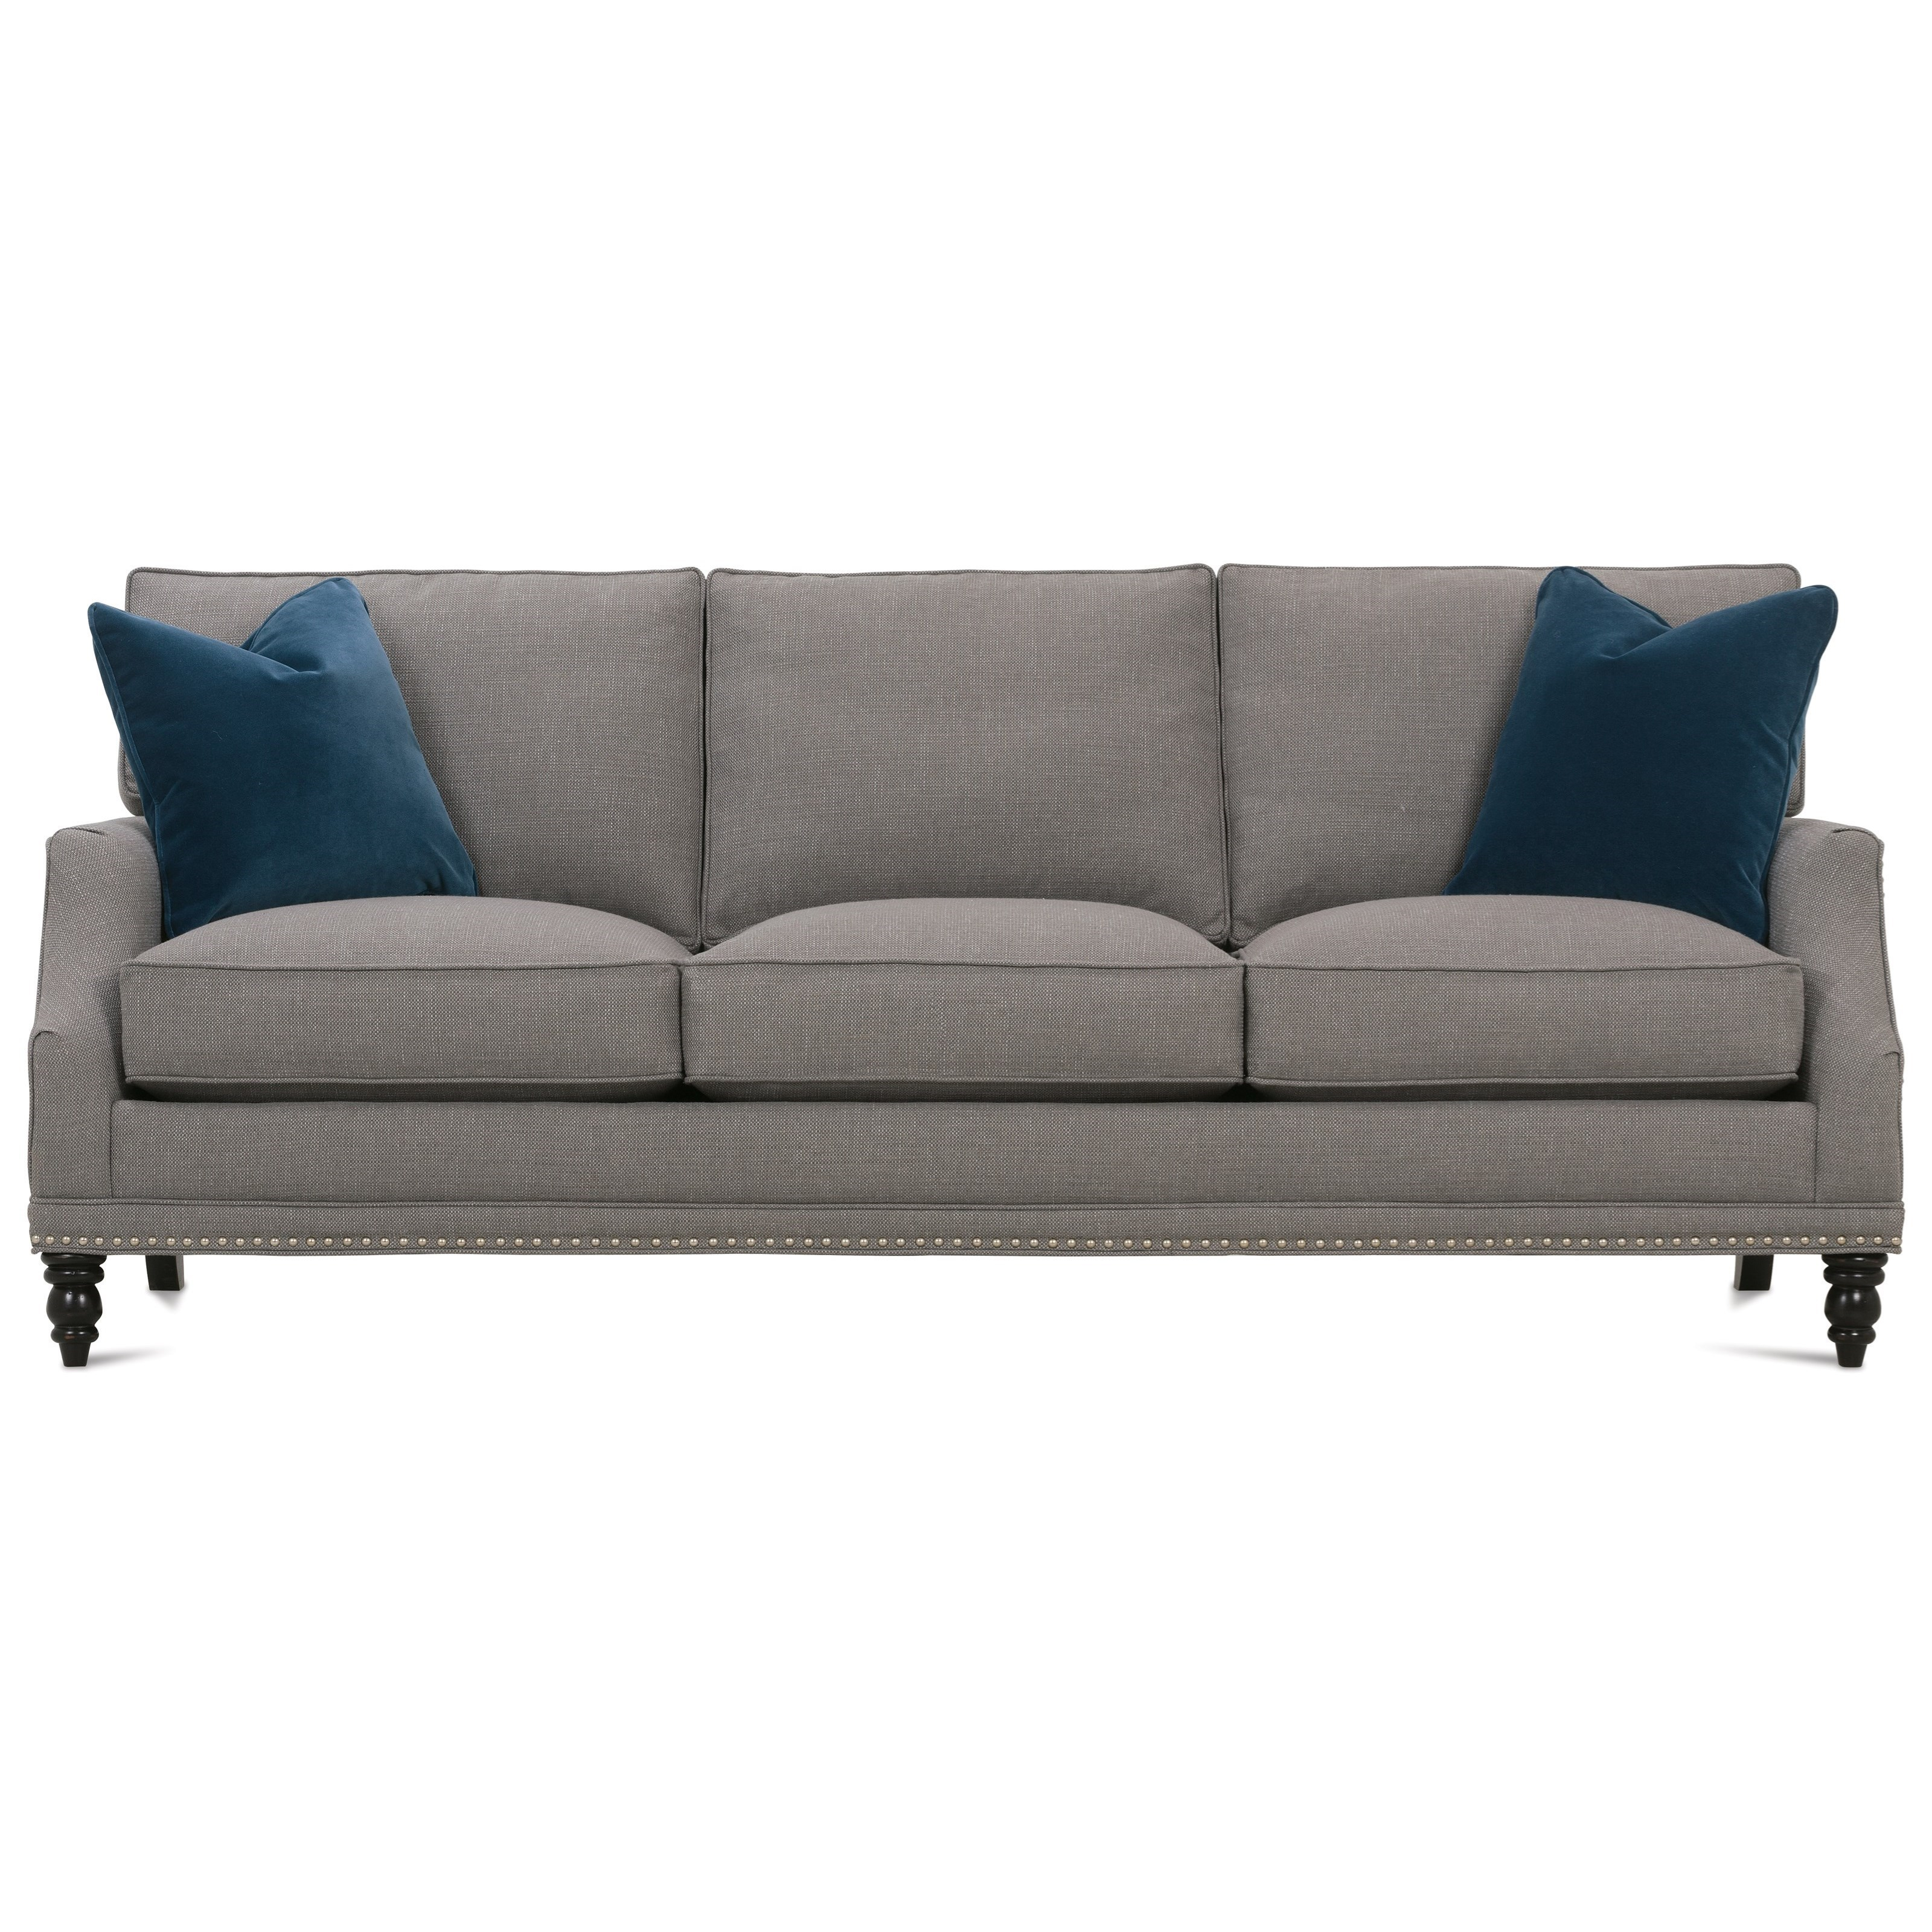 sofas with legs cheapest outdoor sofa for replacement uk